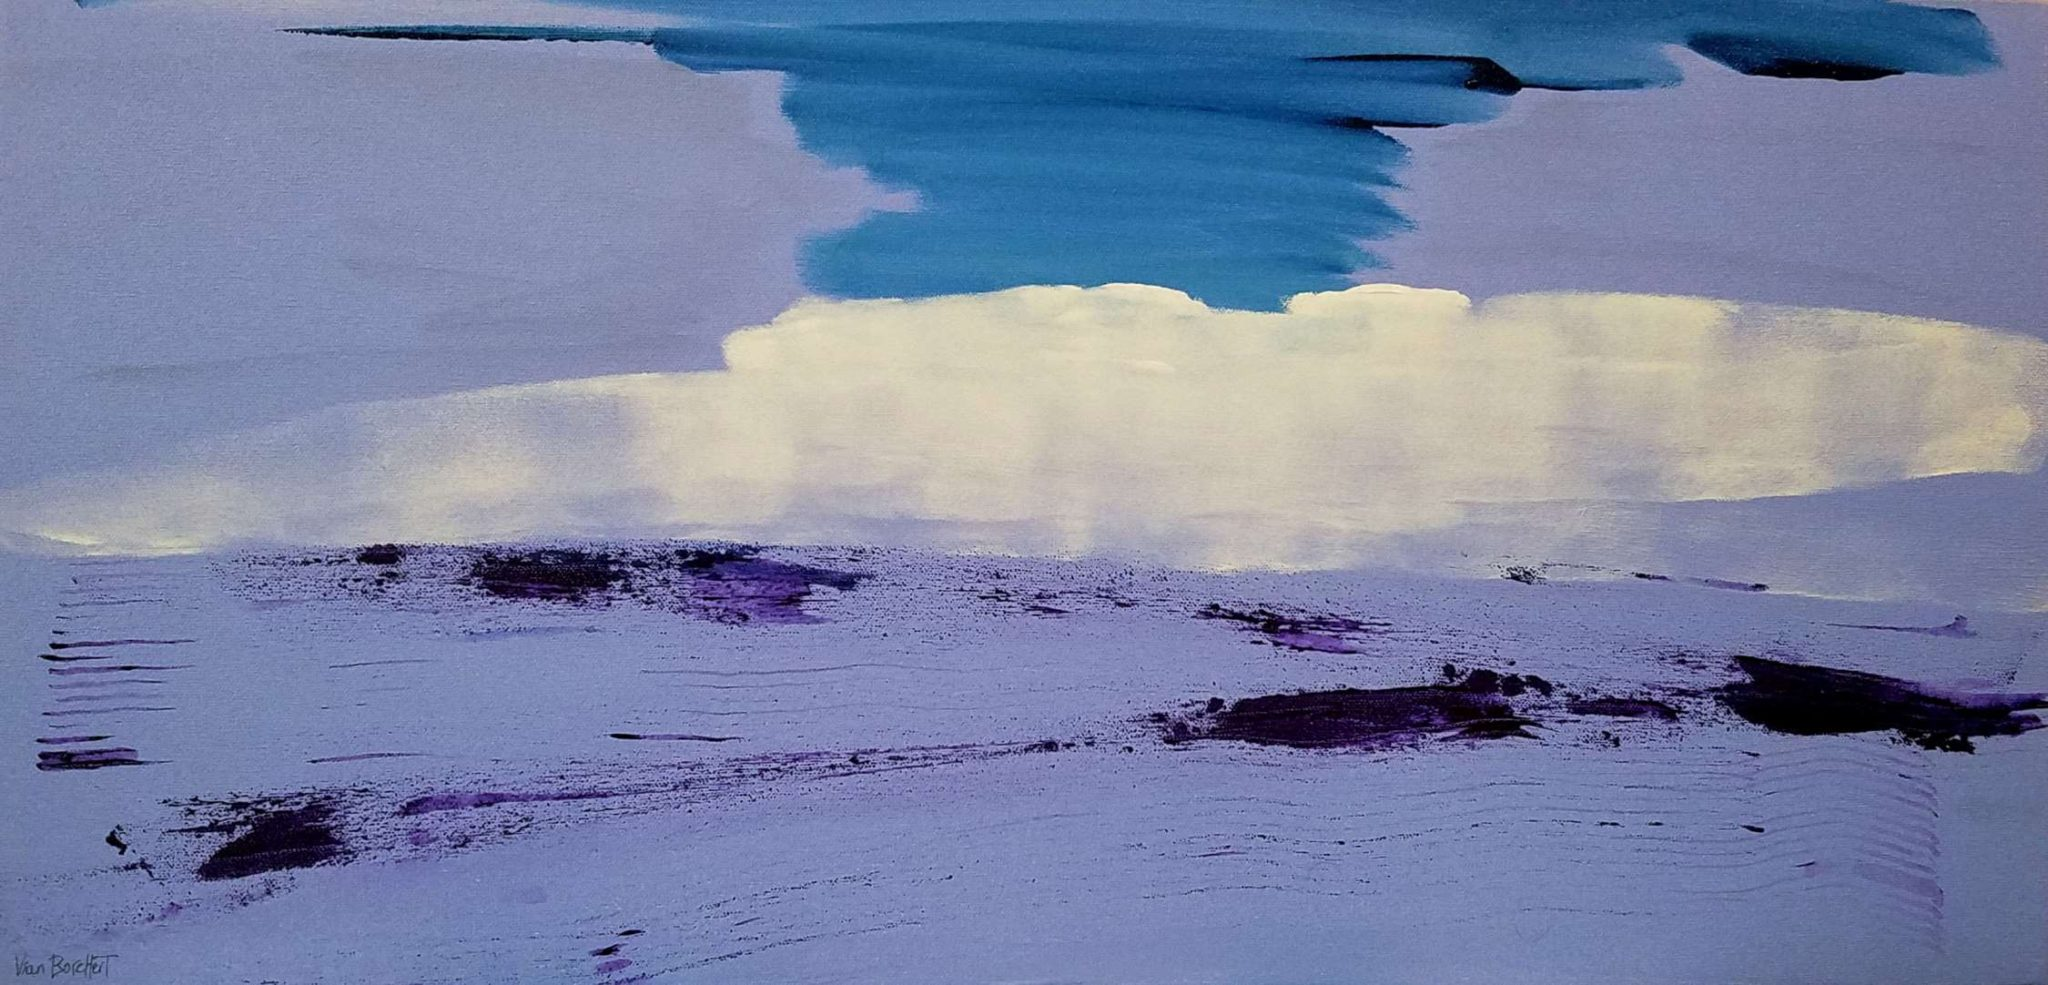 Lavender-Inspired Acrylic Paintings by Vian Borchert